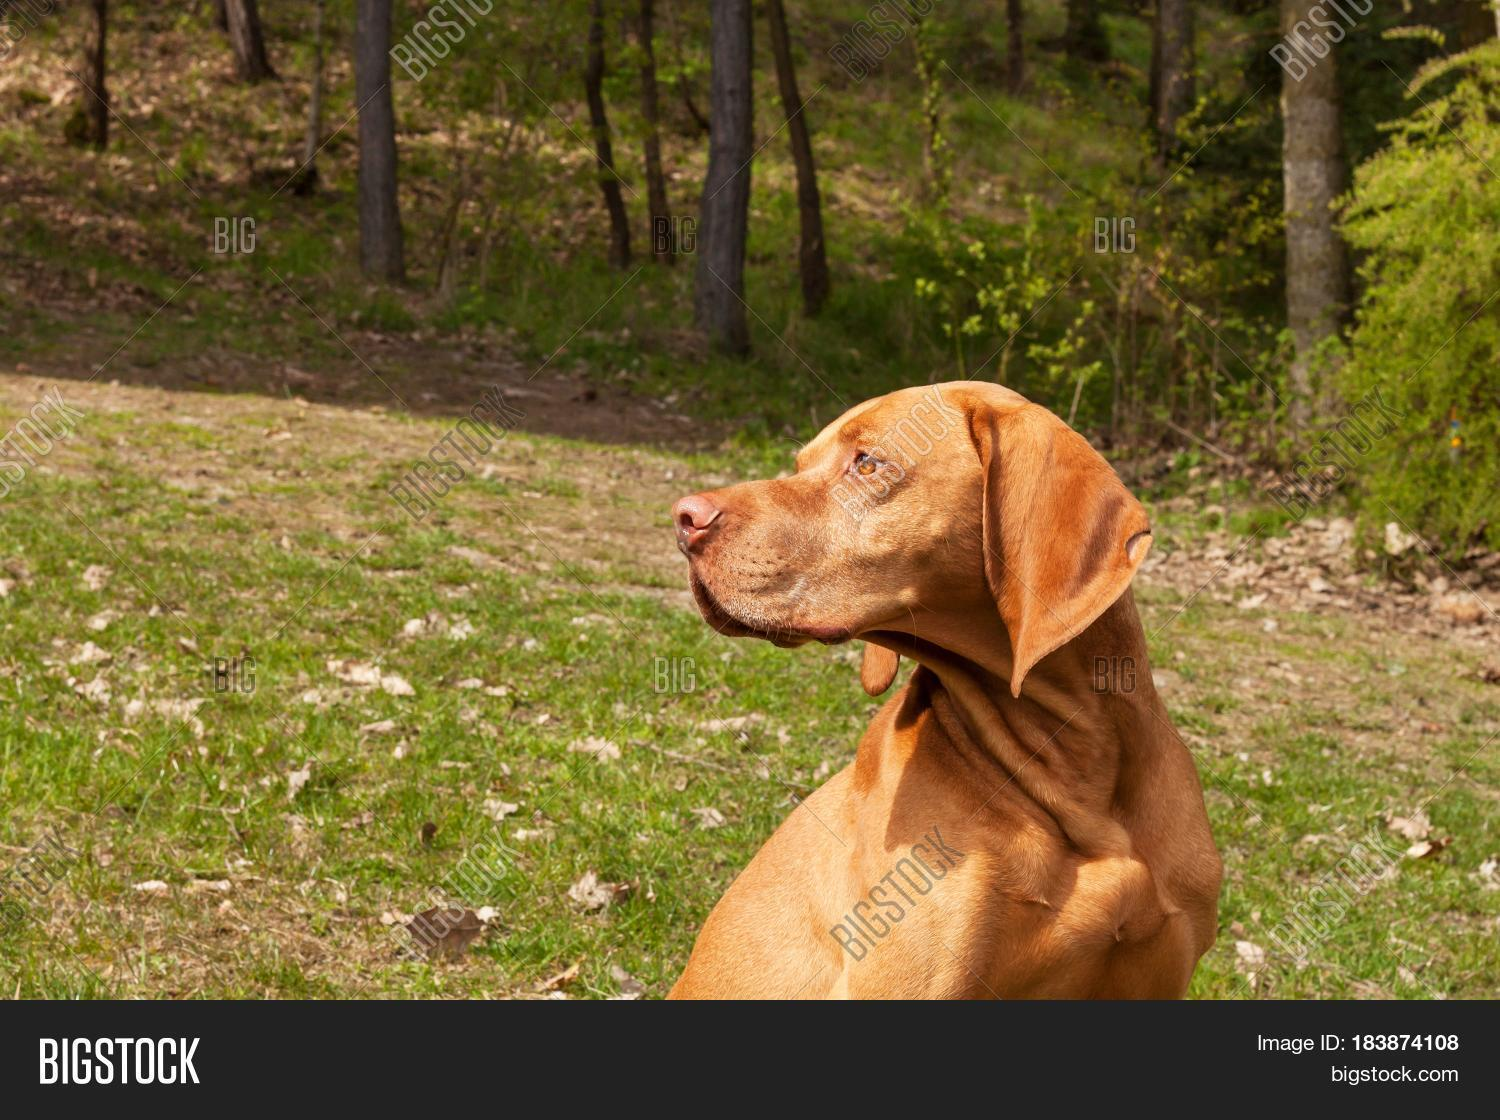 Friend,animal,background,beautiful,beauty,brown,chase,close,closeup,color,cute,day,detail,dog,eyes,field,focus,forest,grass,green,happy,head,hound,hungarian,hunt,hunter,hunting,image,landscape,loyalty,magyar,meadow,nature,one,outdoor,pet,pointer,portrait,profile,purebred,sniff,spring,summer,sunlit,visla,viszla,vizsla,white,young